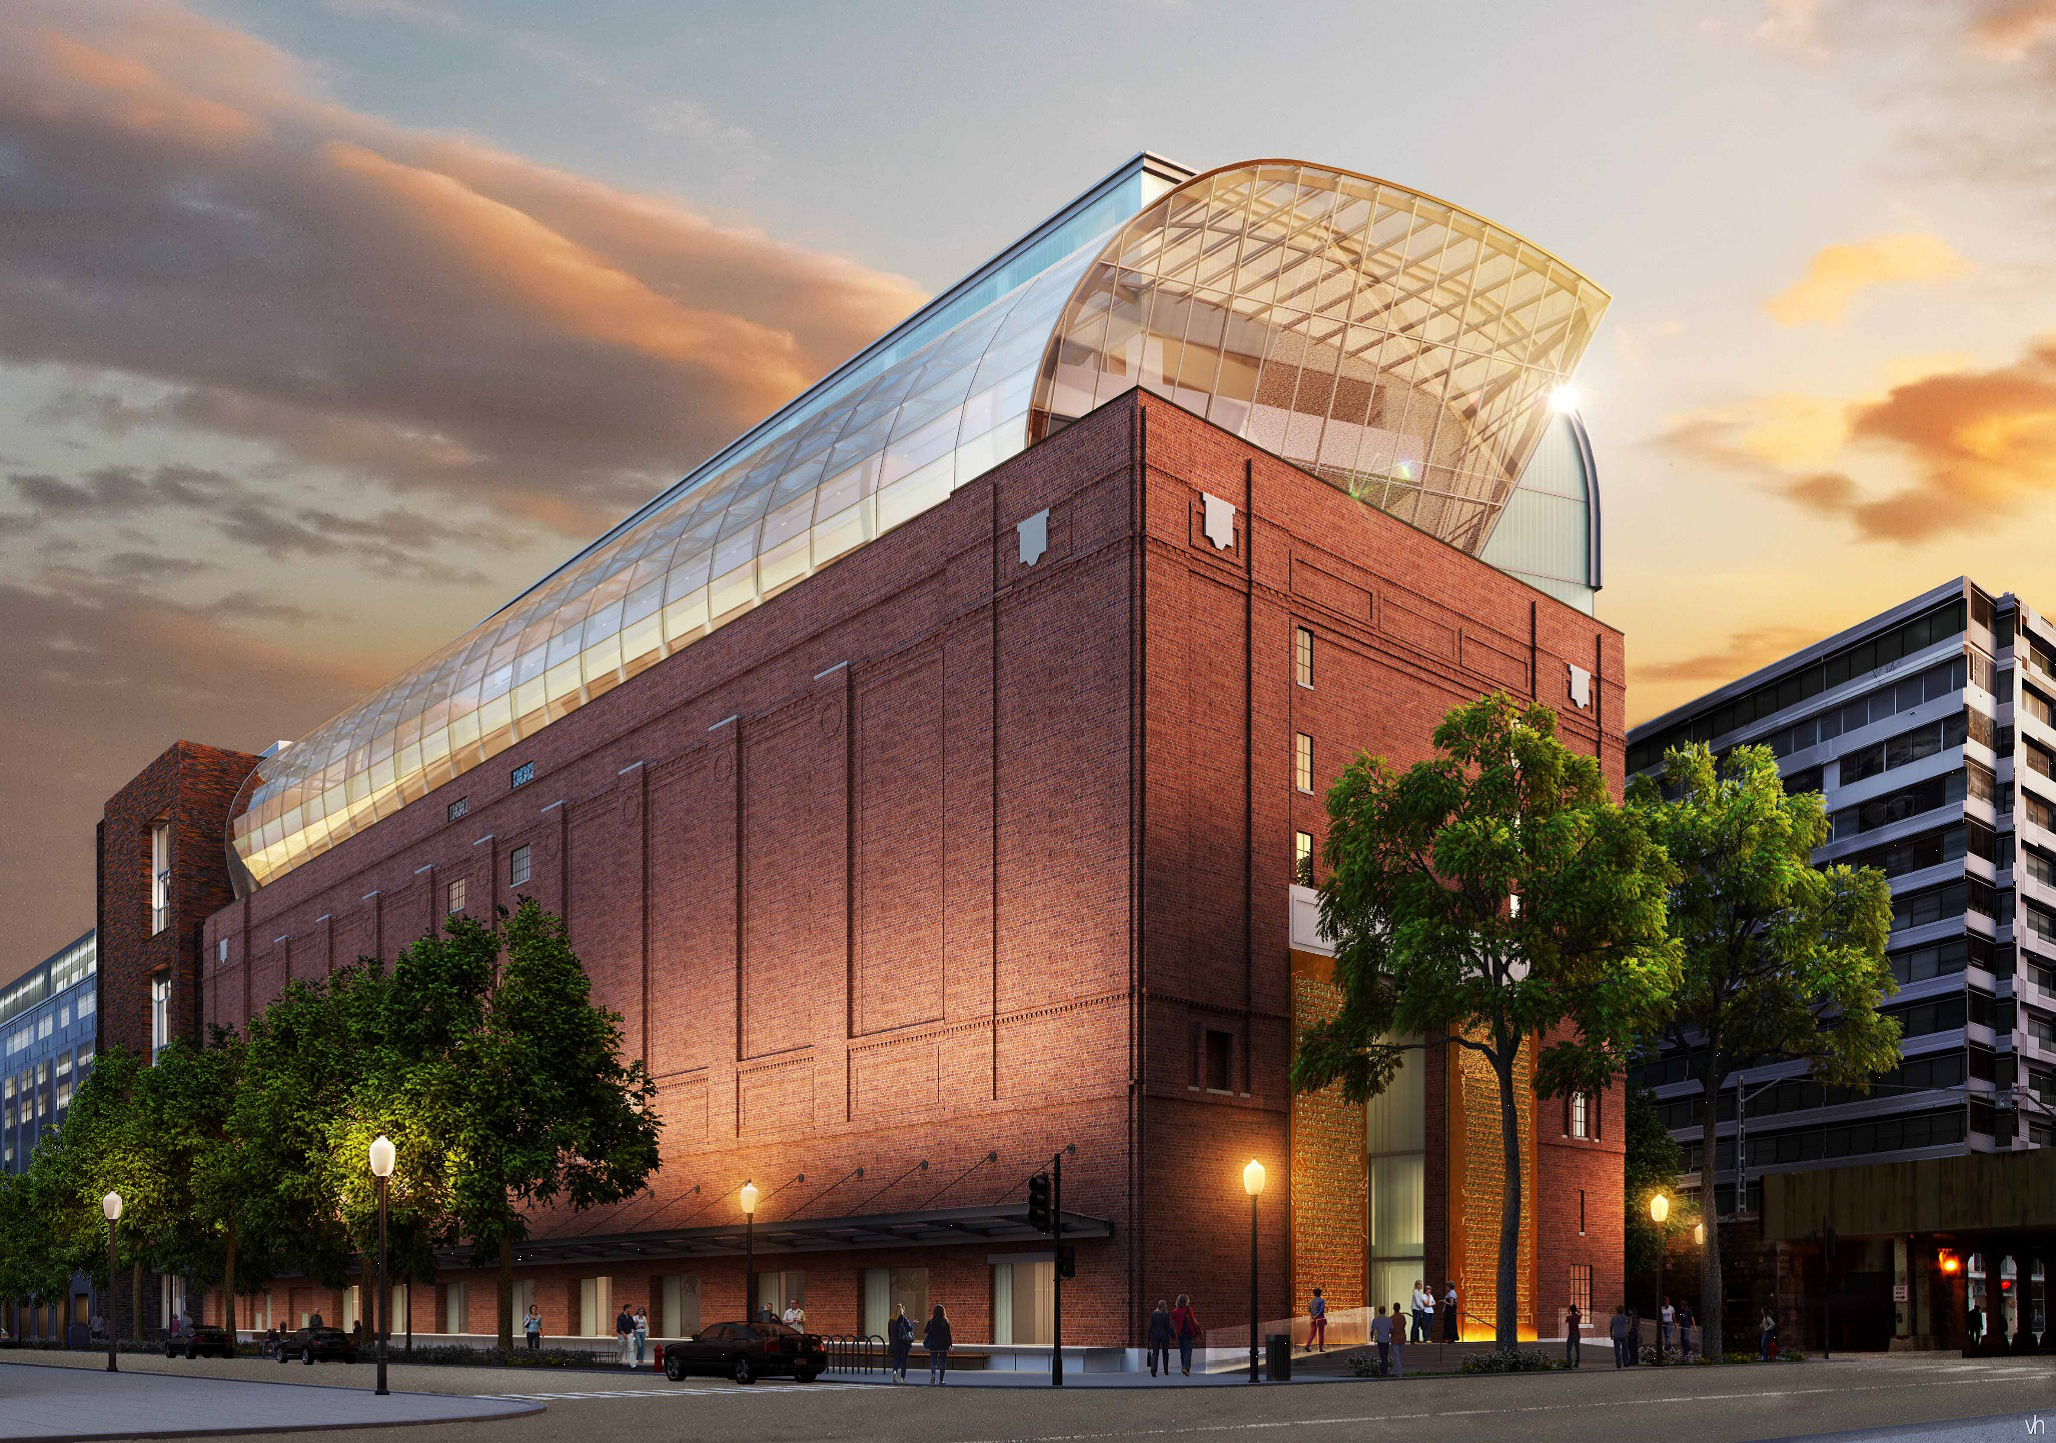 Rendering of the 430,000 Museum of the Bible, currently under construction, and just 3 blocks south of the US Capitol.